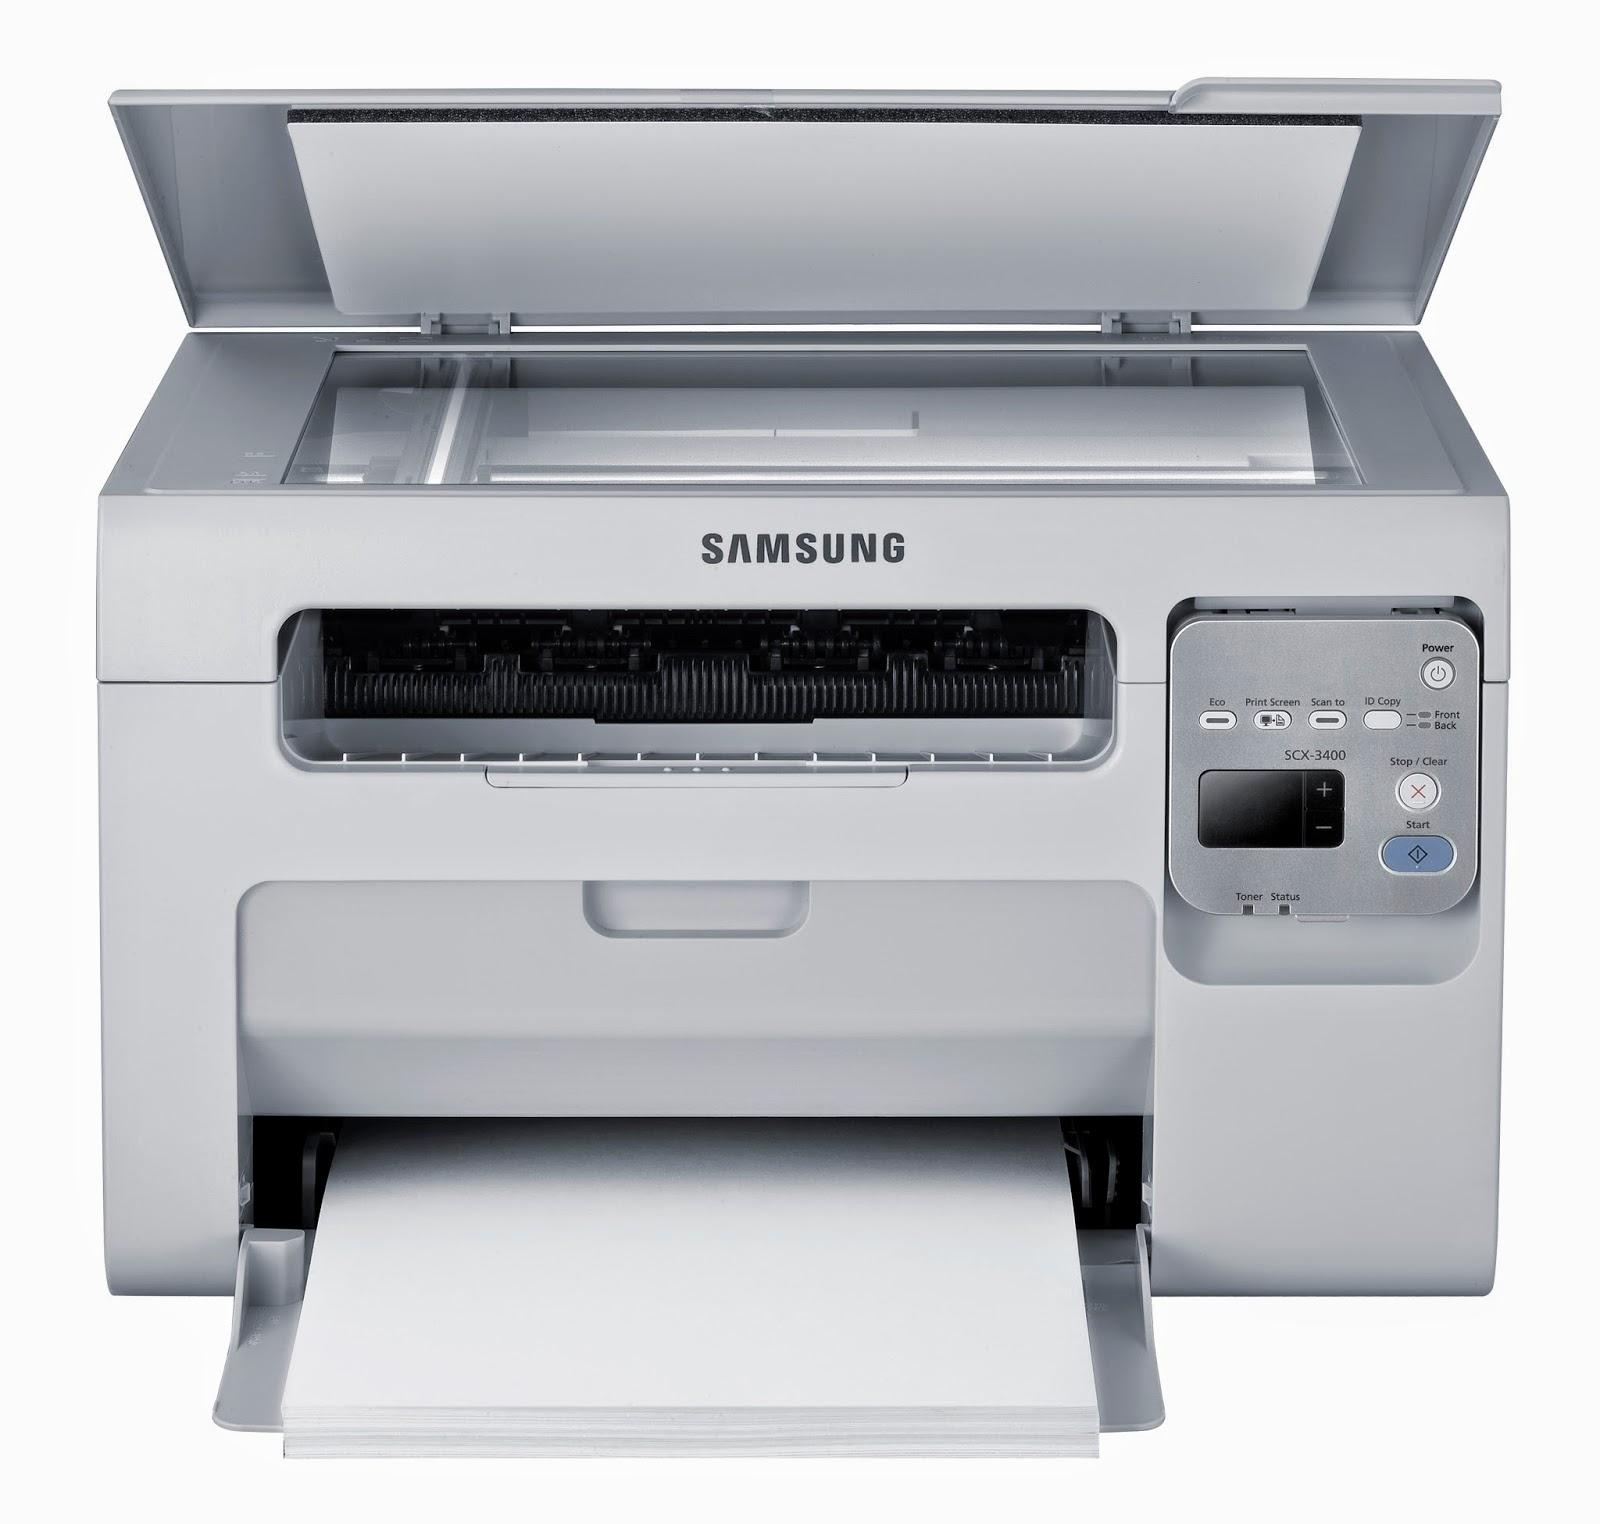 SAMSUNG PRINTER 4521F DRIVERS WINDOWS 7 (2019)